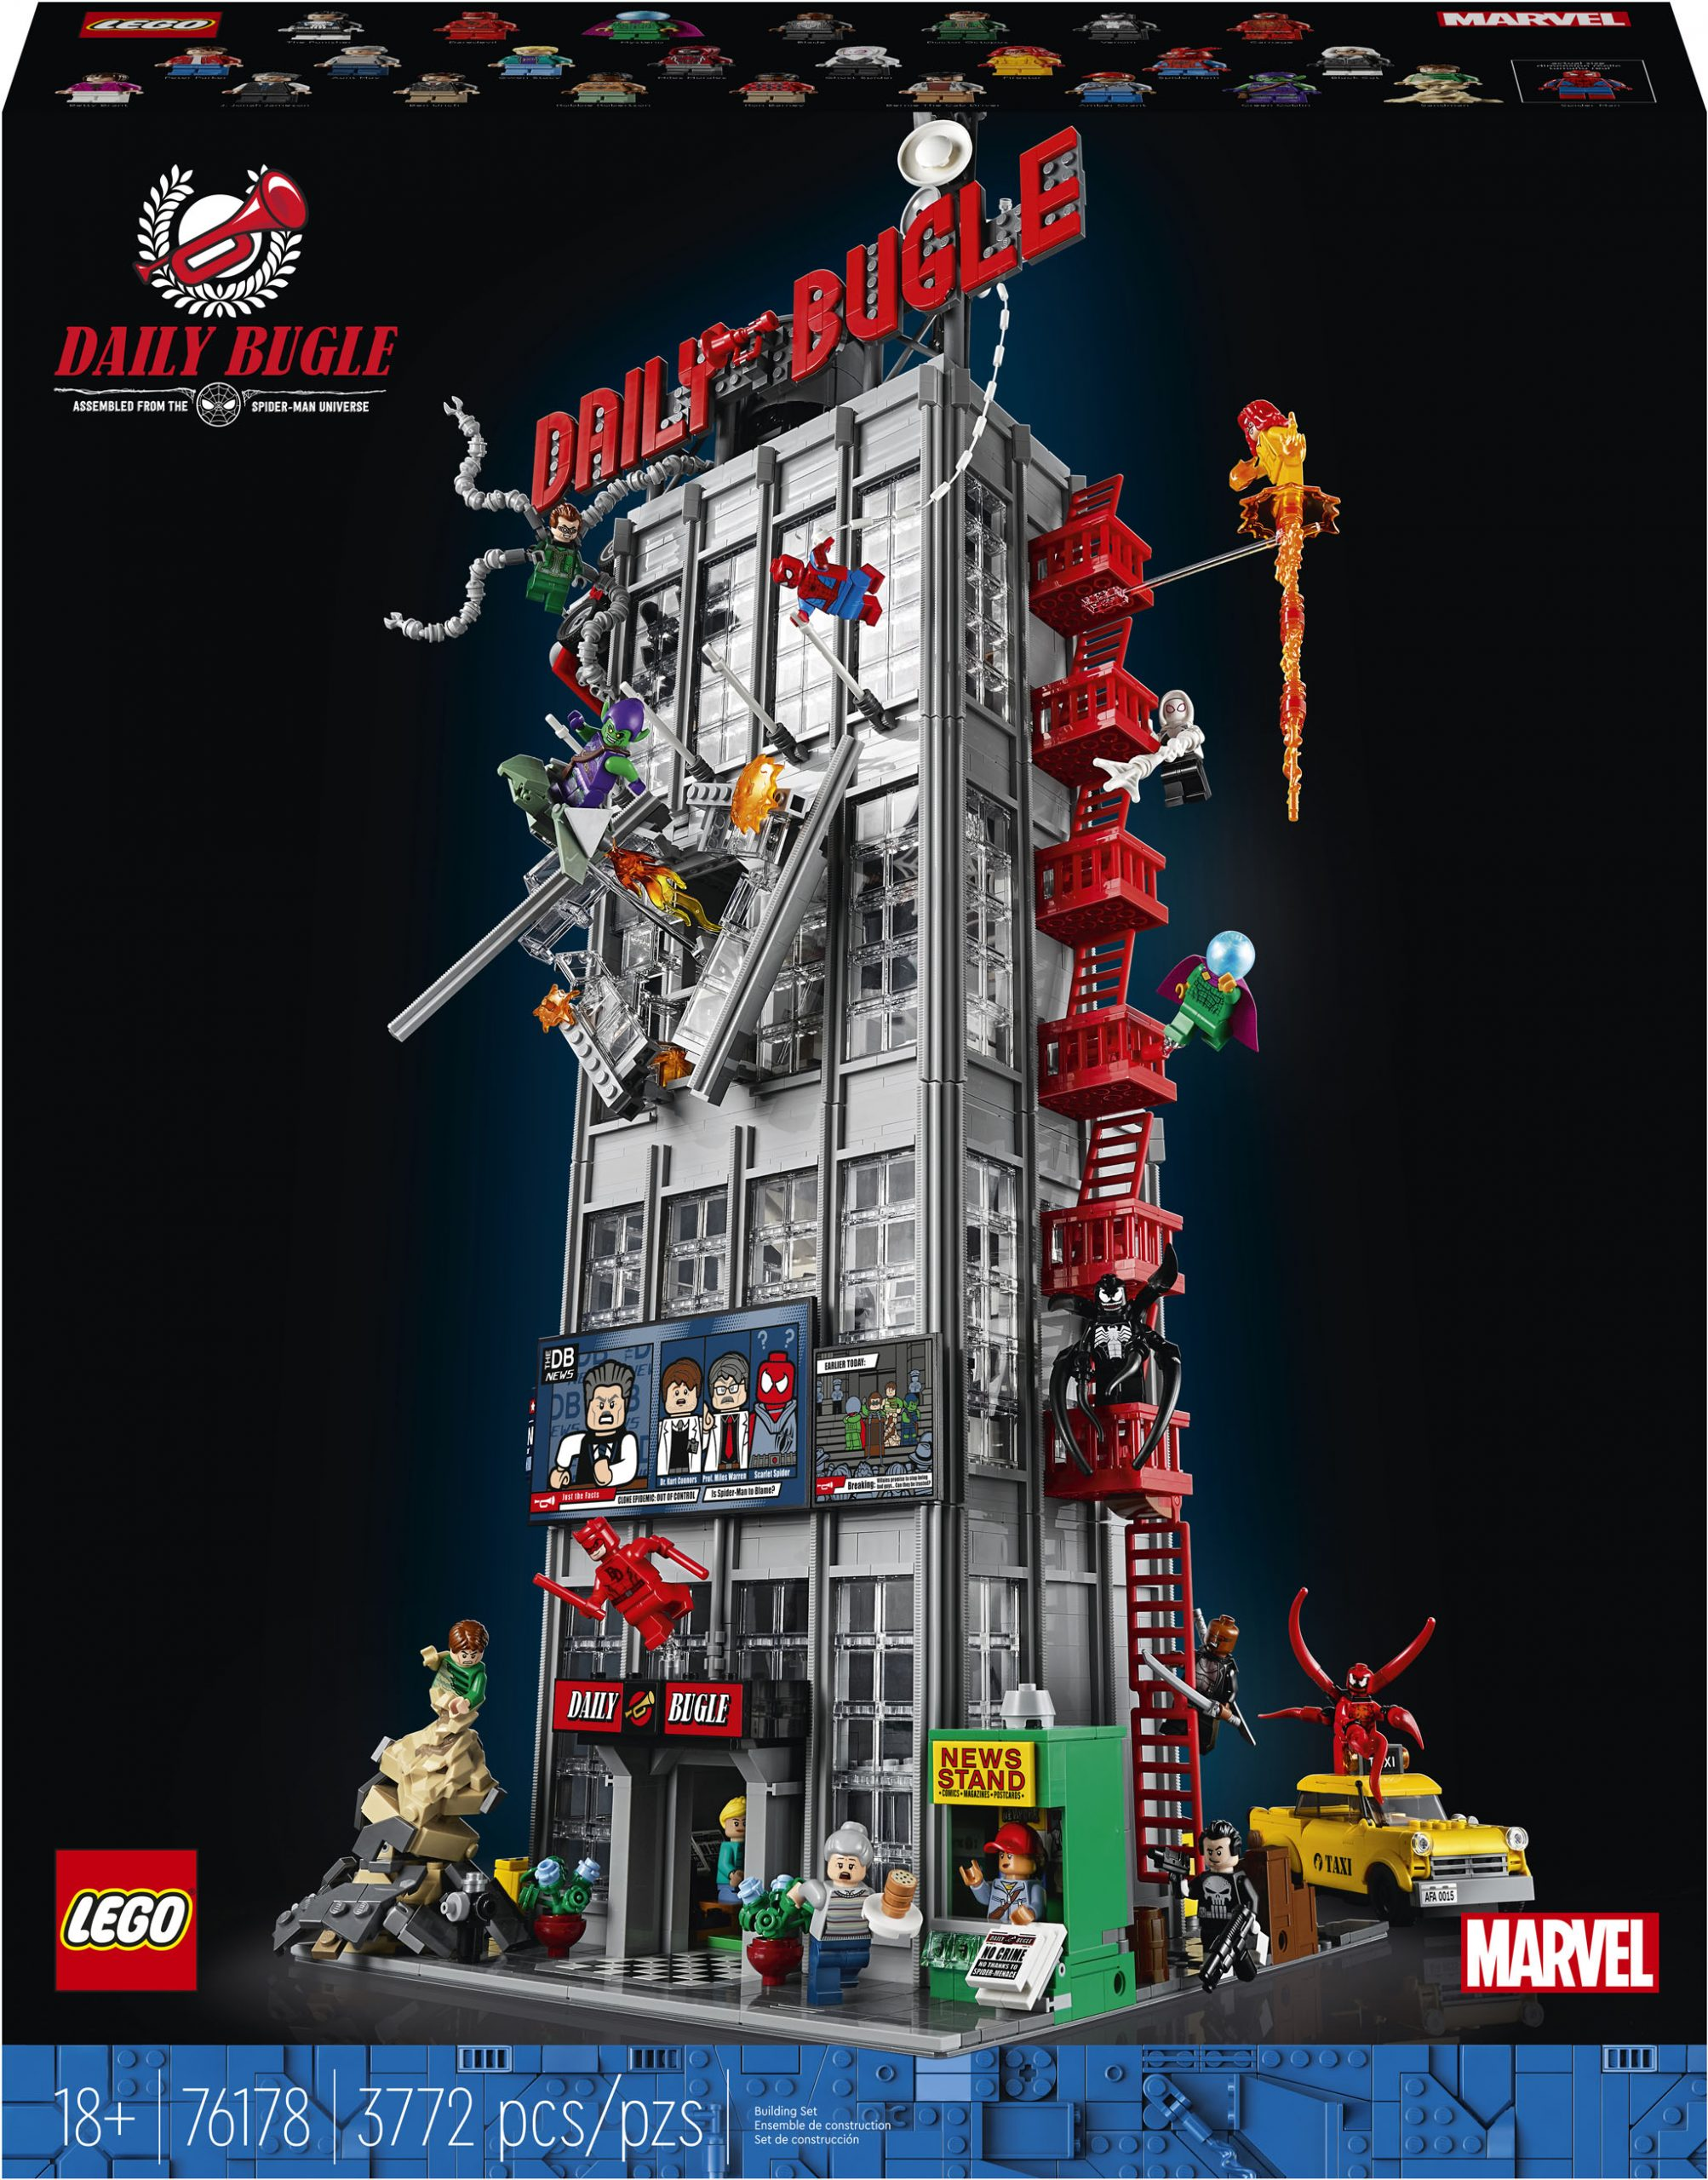 LEGO-Marvel-Super-Heroes-Daily-Bugle-761